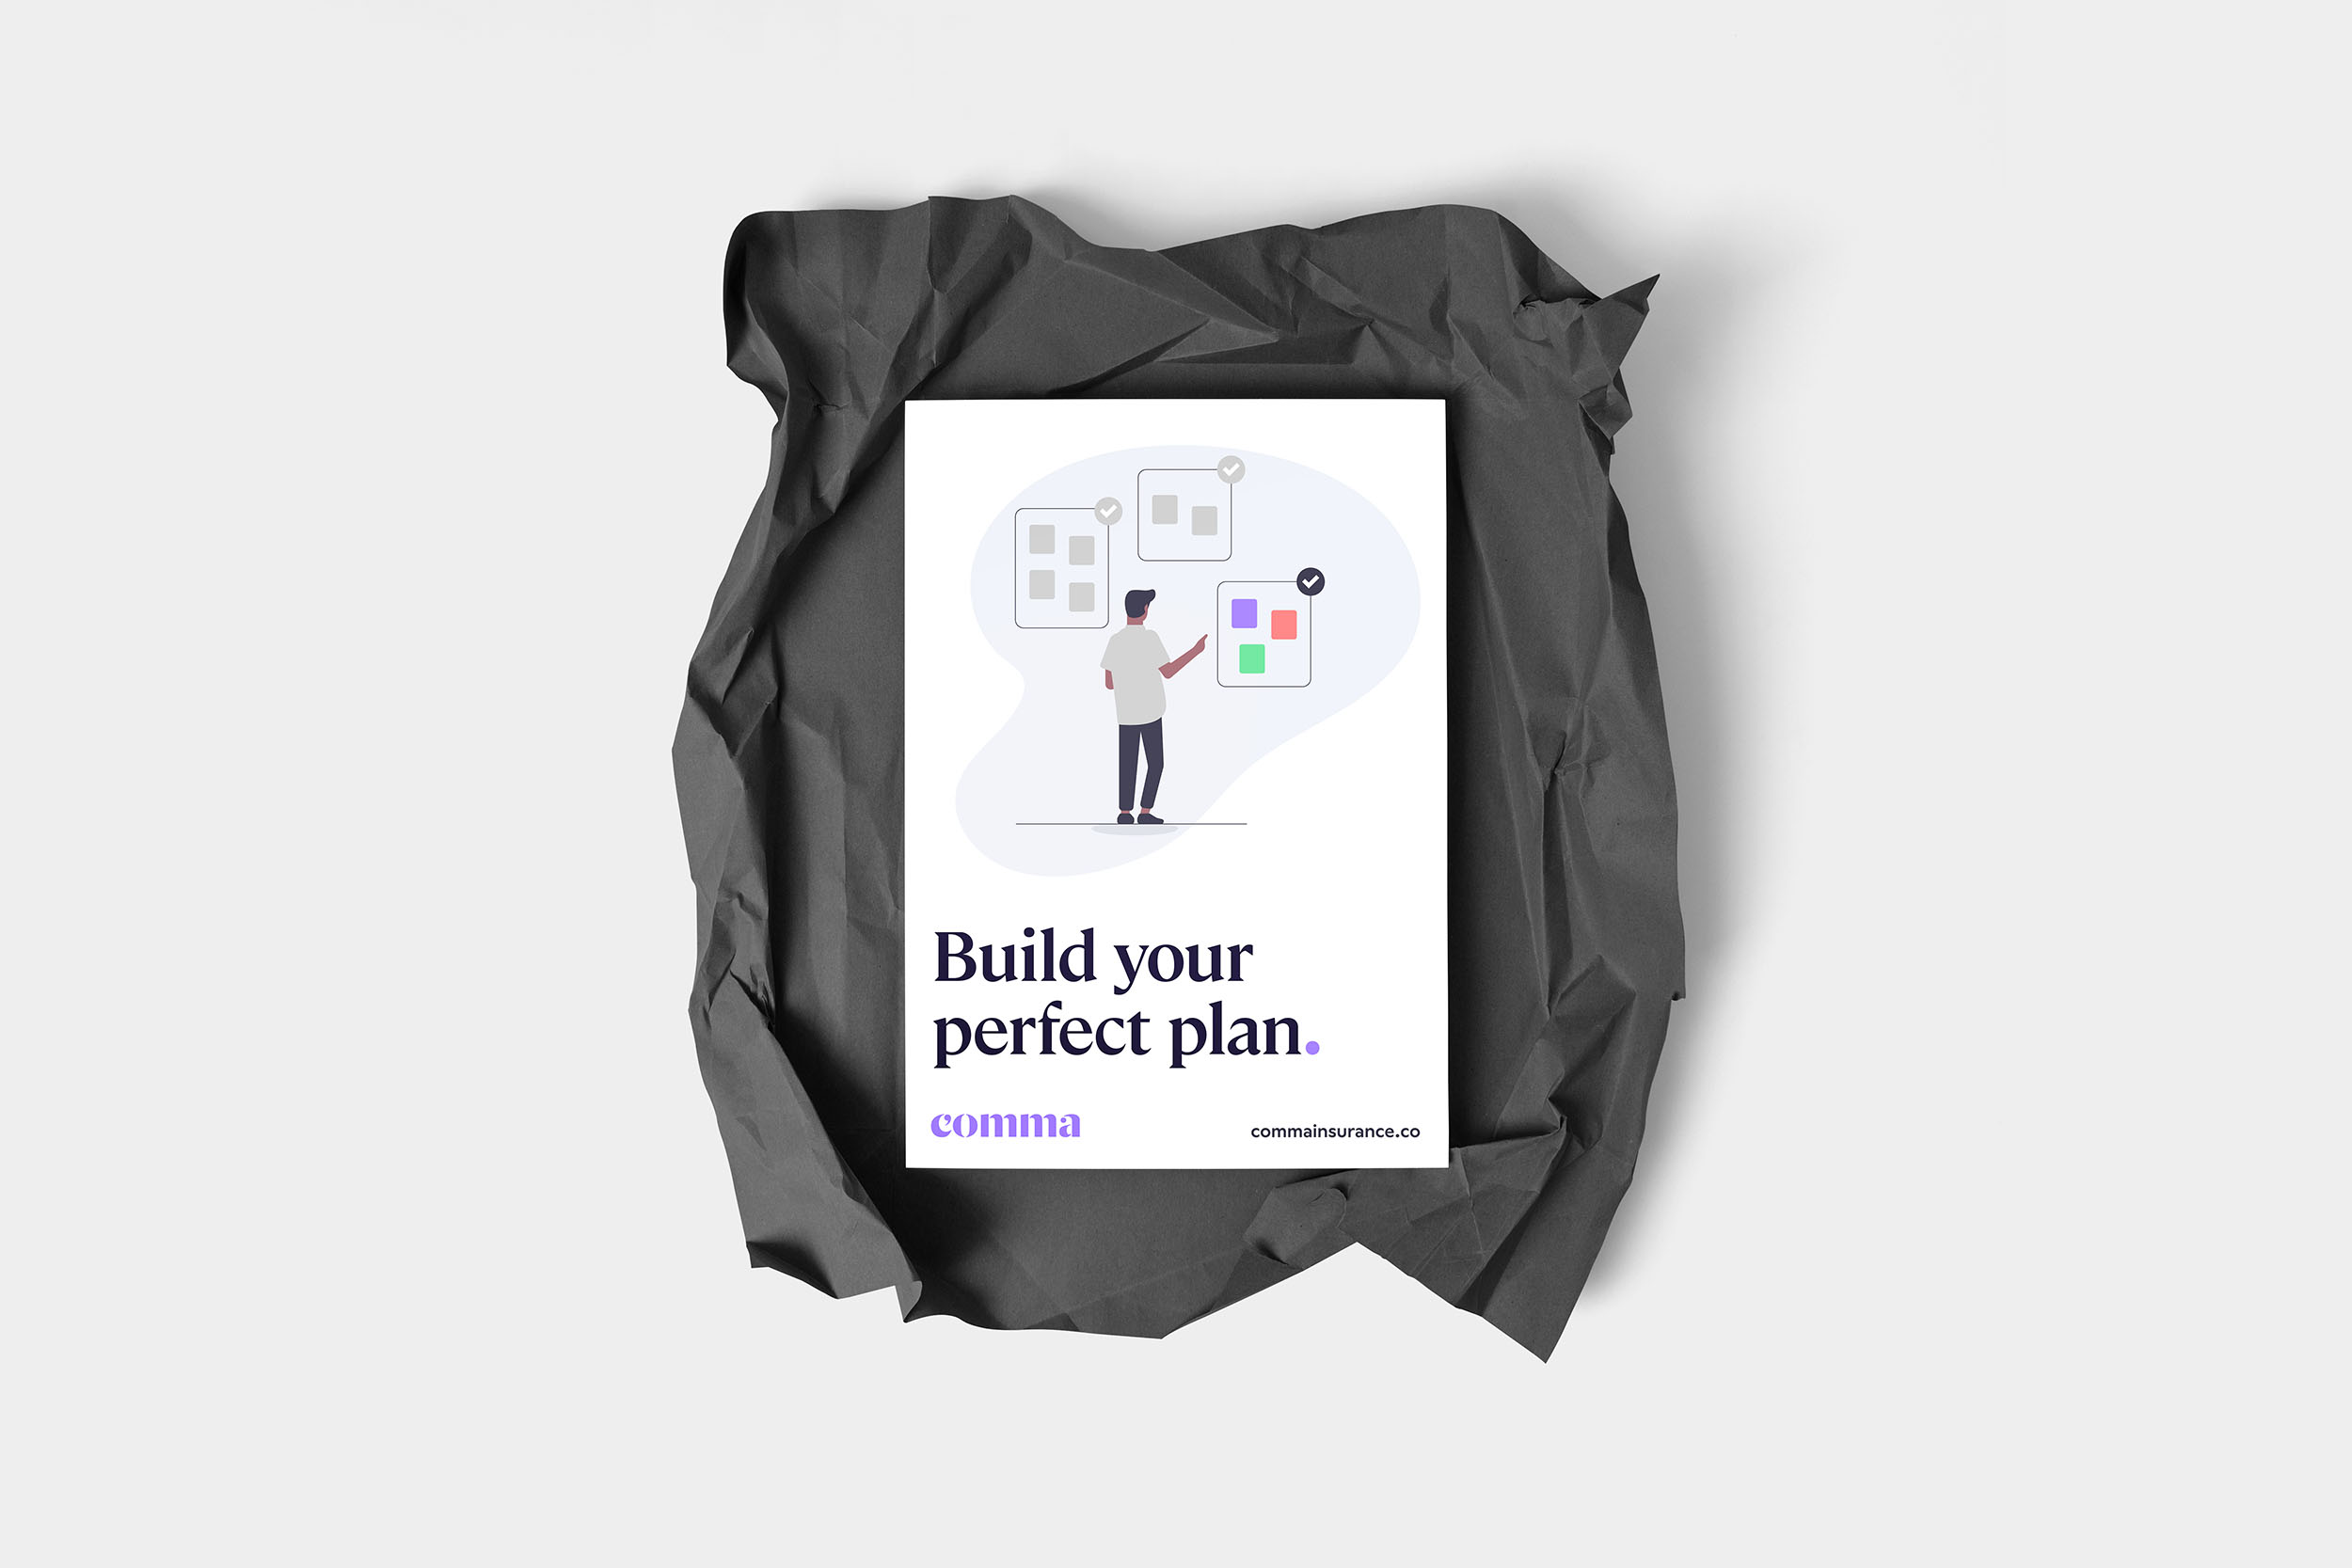 Build your perfect plan poster